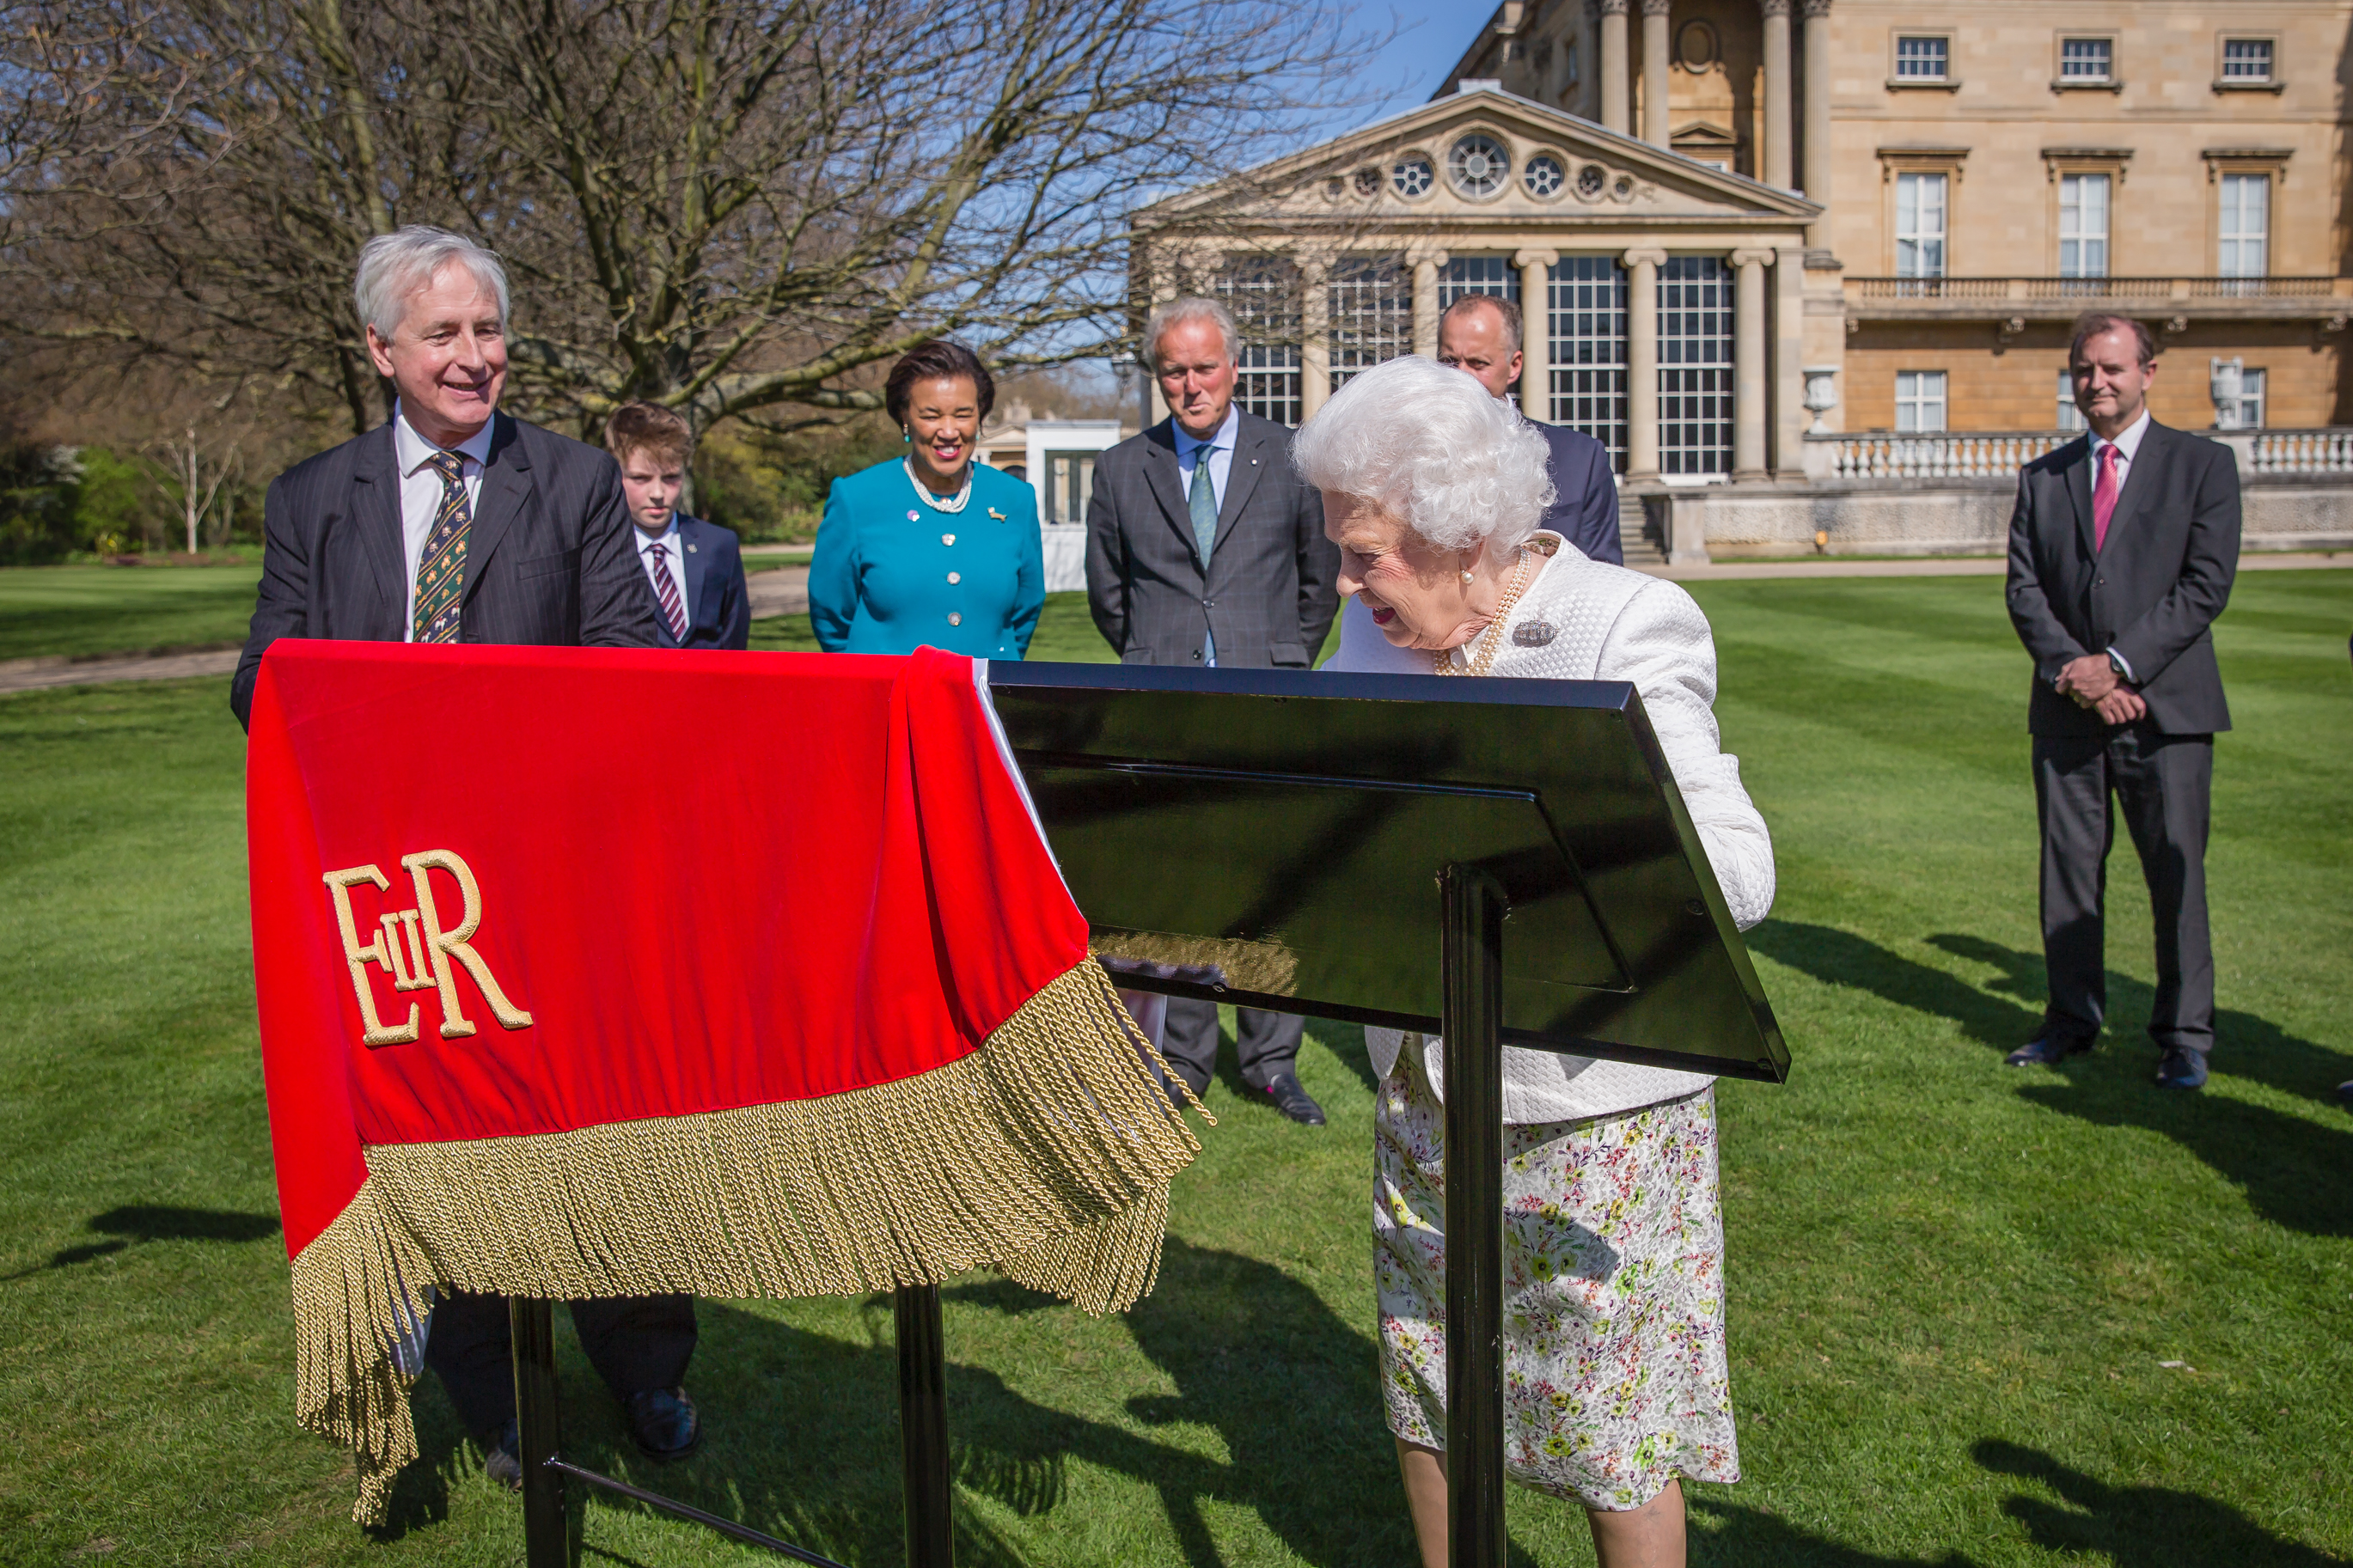 Her Majesty The Queen launches a new Commonwealth Walkway in London